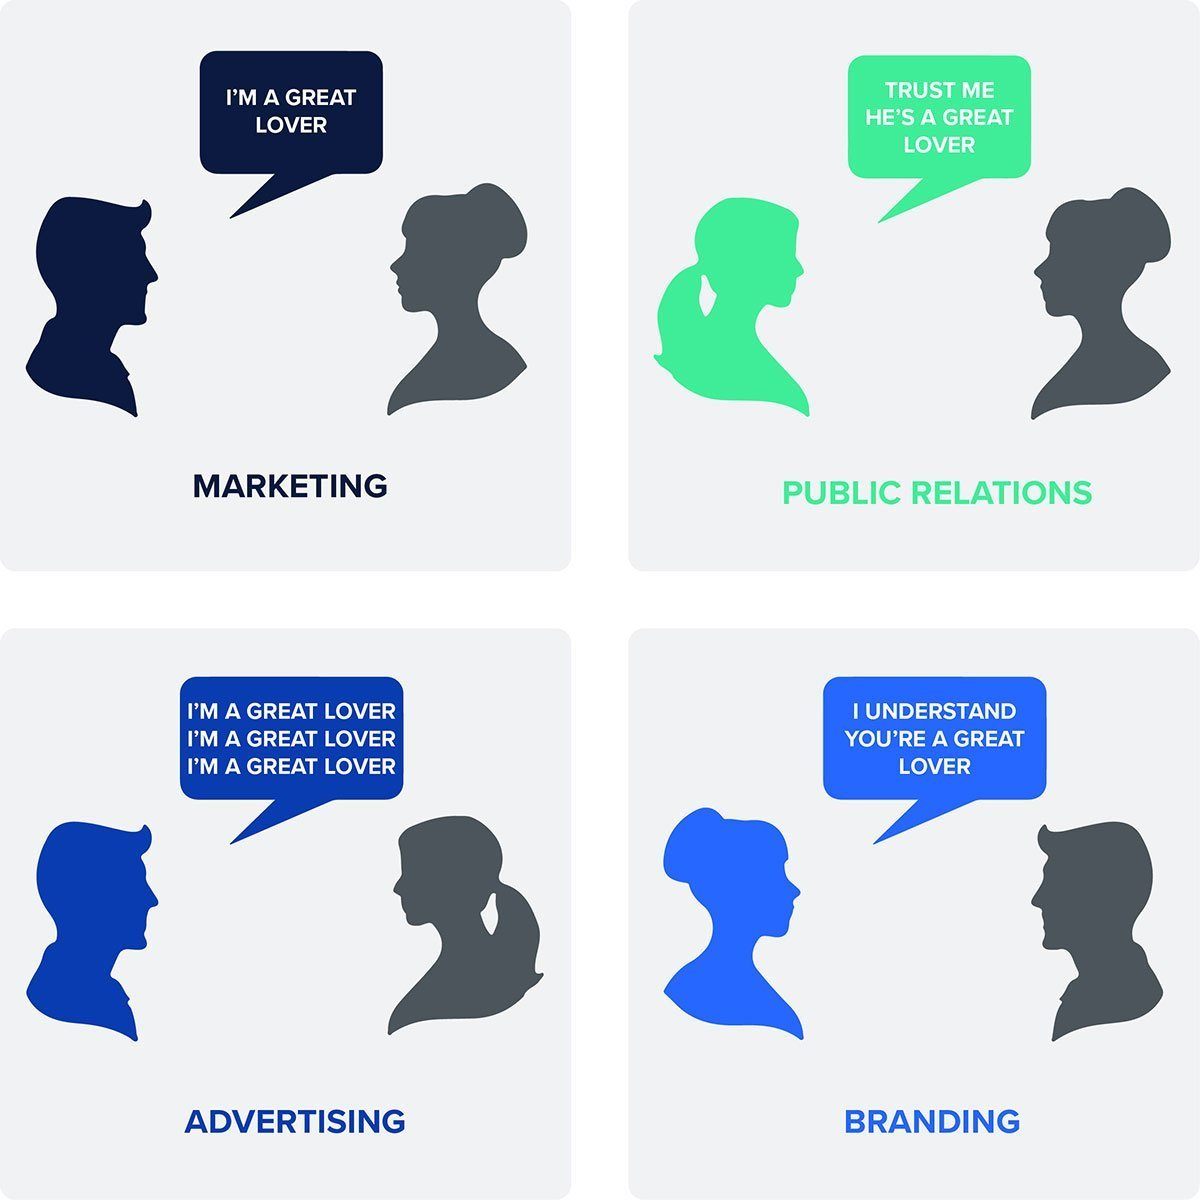 The difference between marketing, advertising, and PR to branding